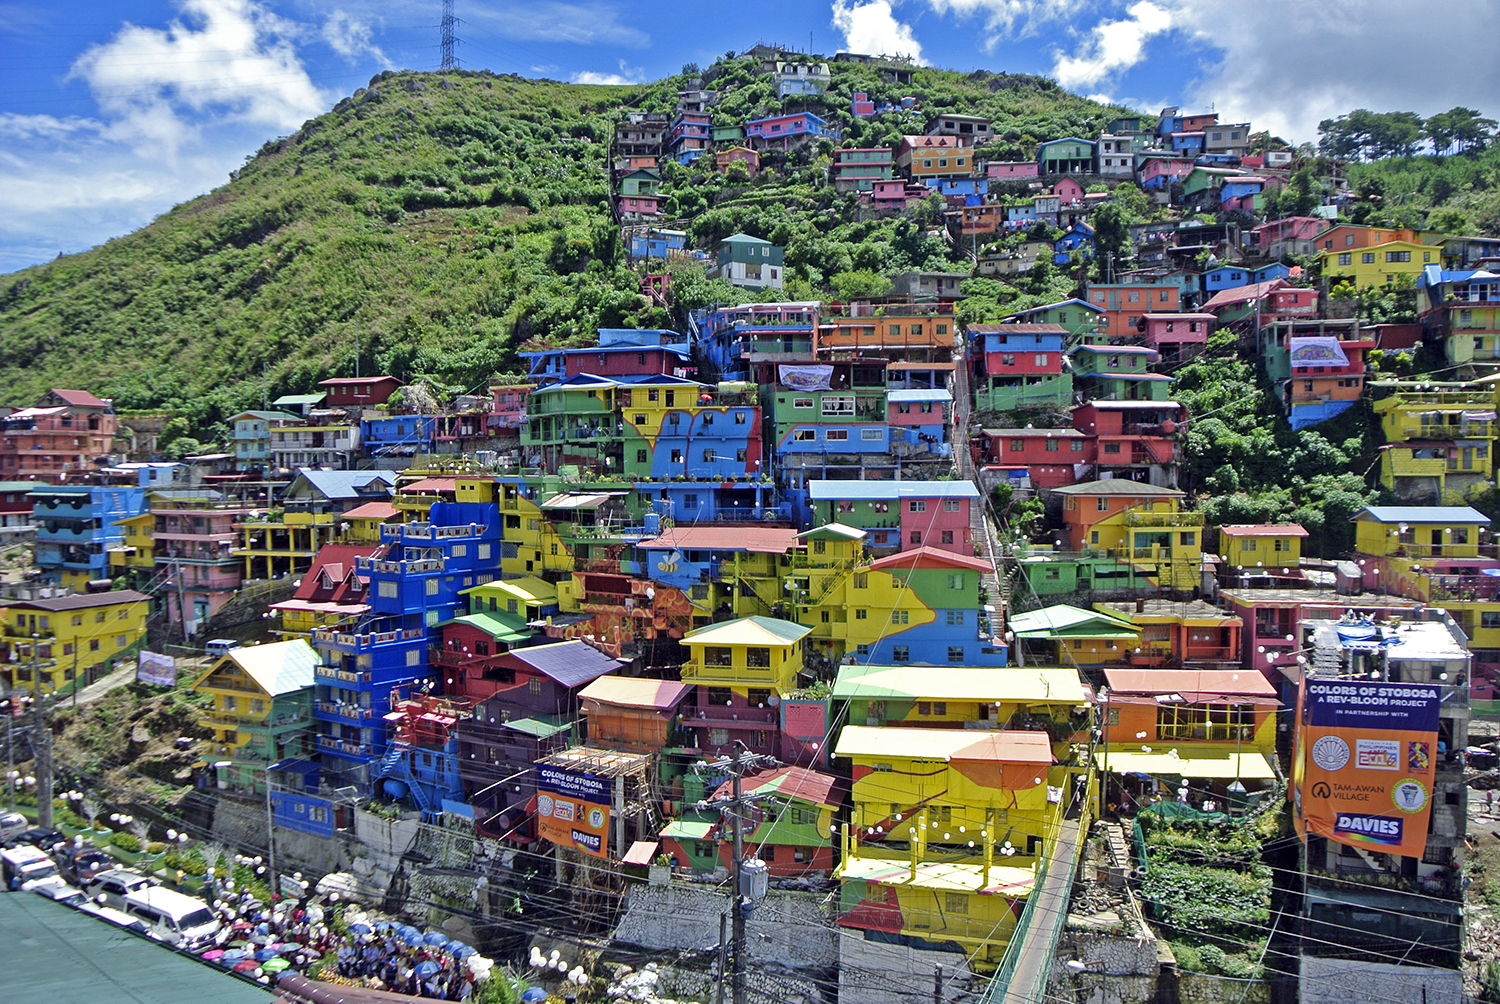 Blueprint Of A House Look La Trinidad Houses Turn Into Gigantic Colorful Mural